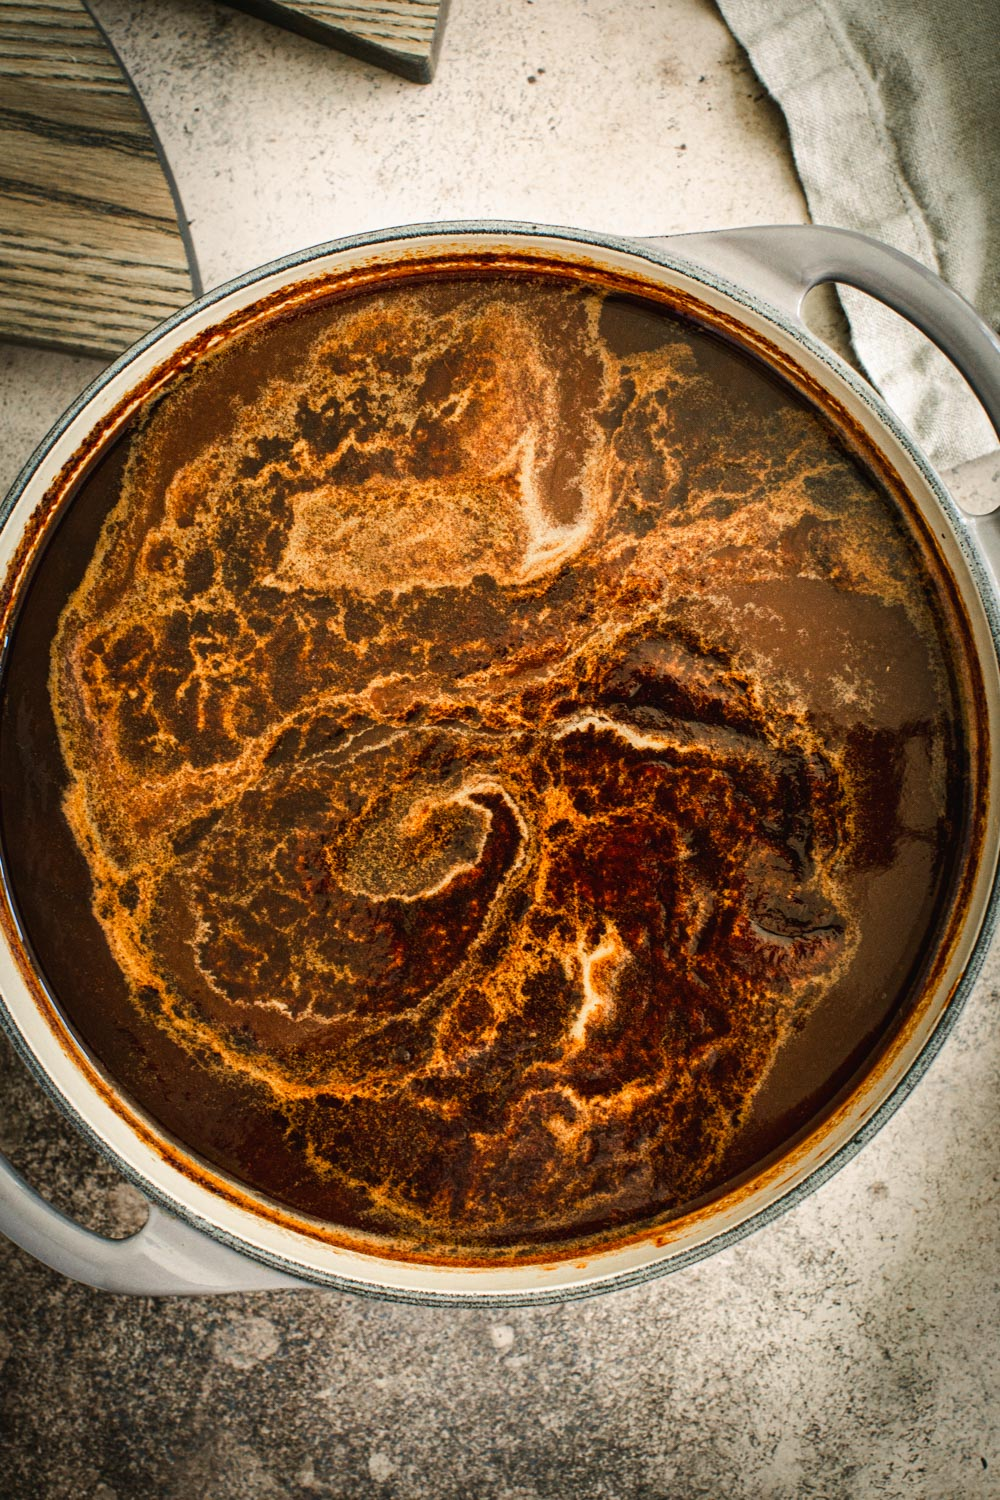 Barbecue sauce cooking in a large Dutch oven.